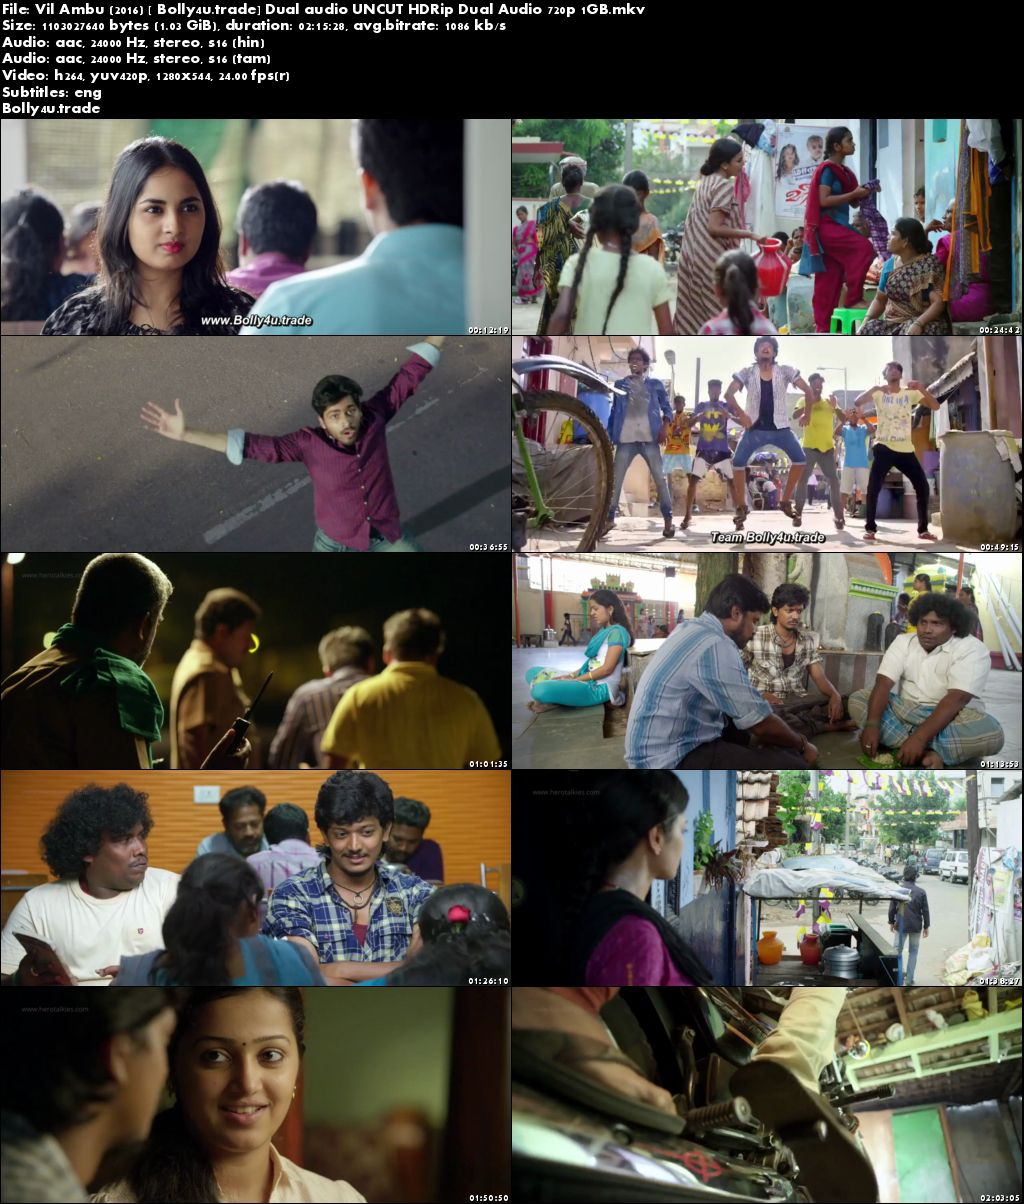 Vil Ambu 2016 HDRip 1Gb UNCUT Hindi Dubbed Dual Audio 720p Download